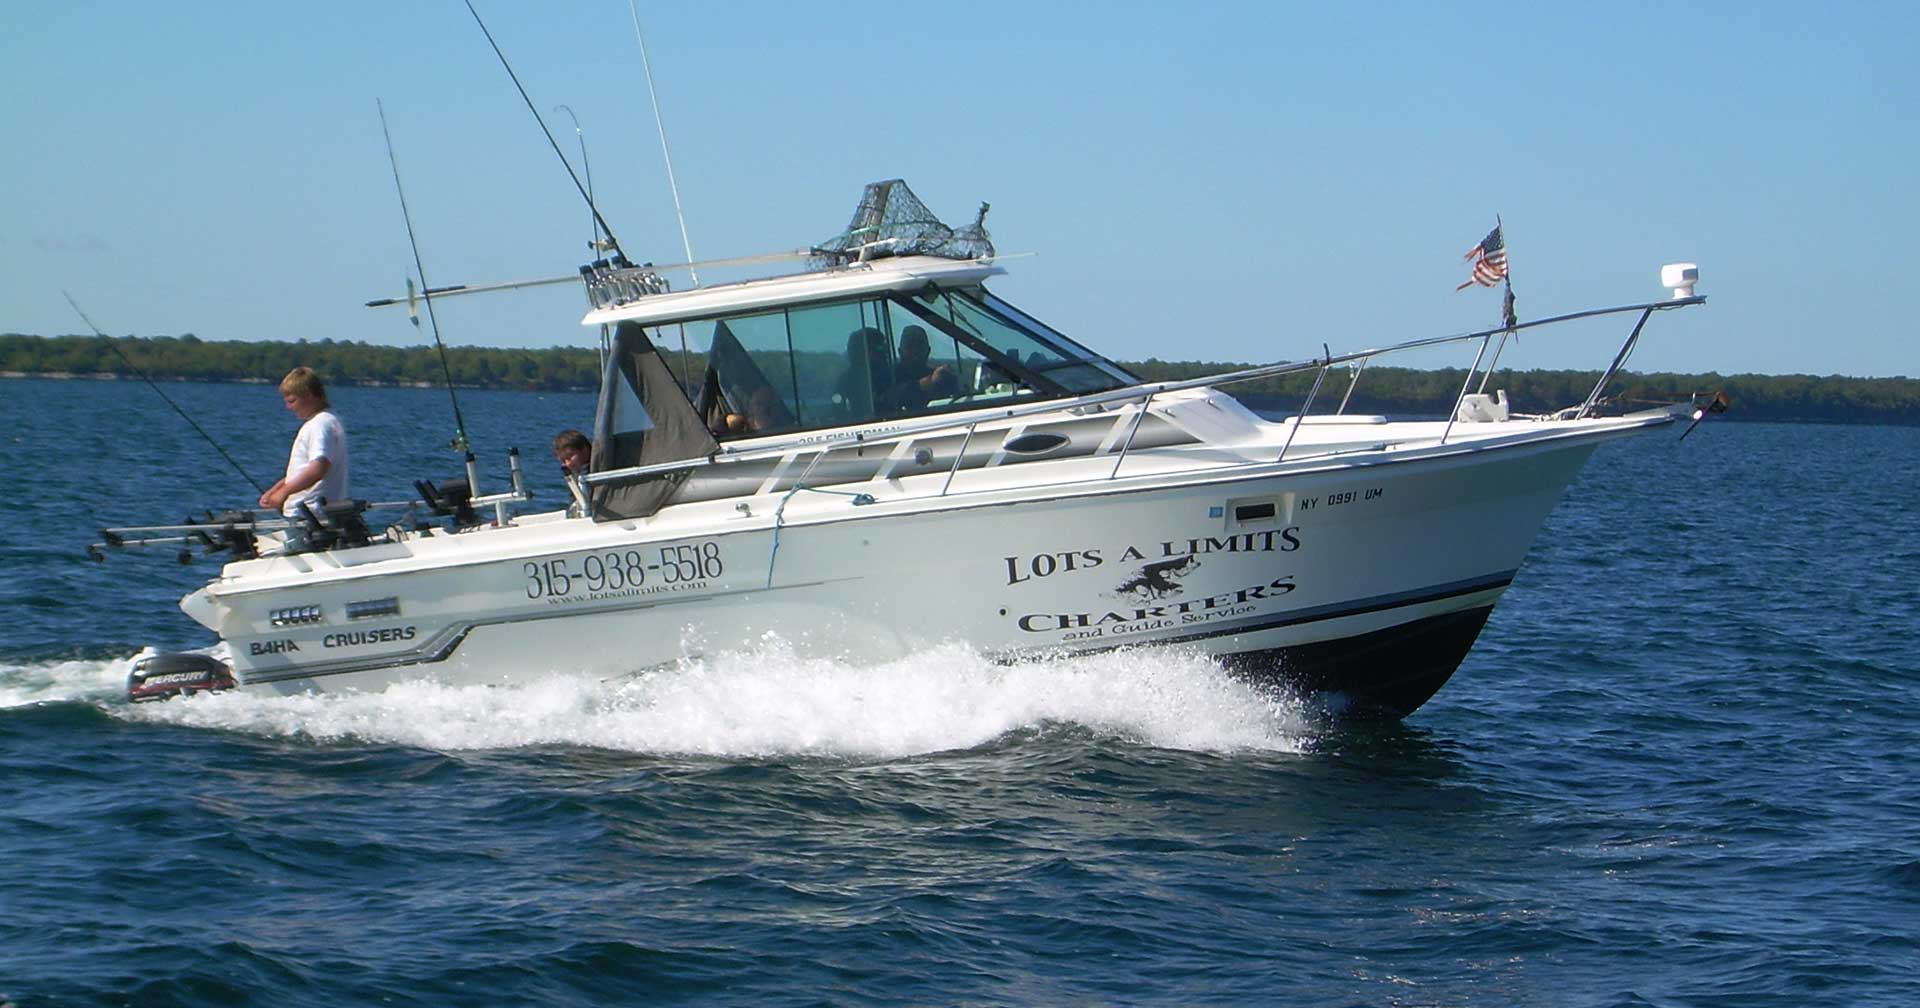 Lake ontario fishing guides charter services in for Lake ontario salmon fishing charters